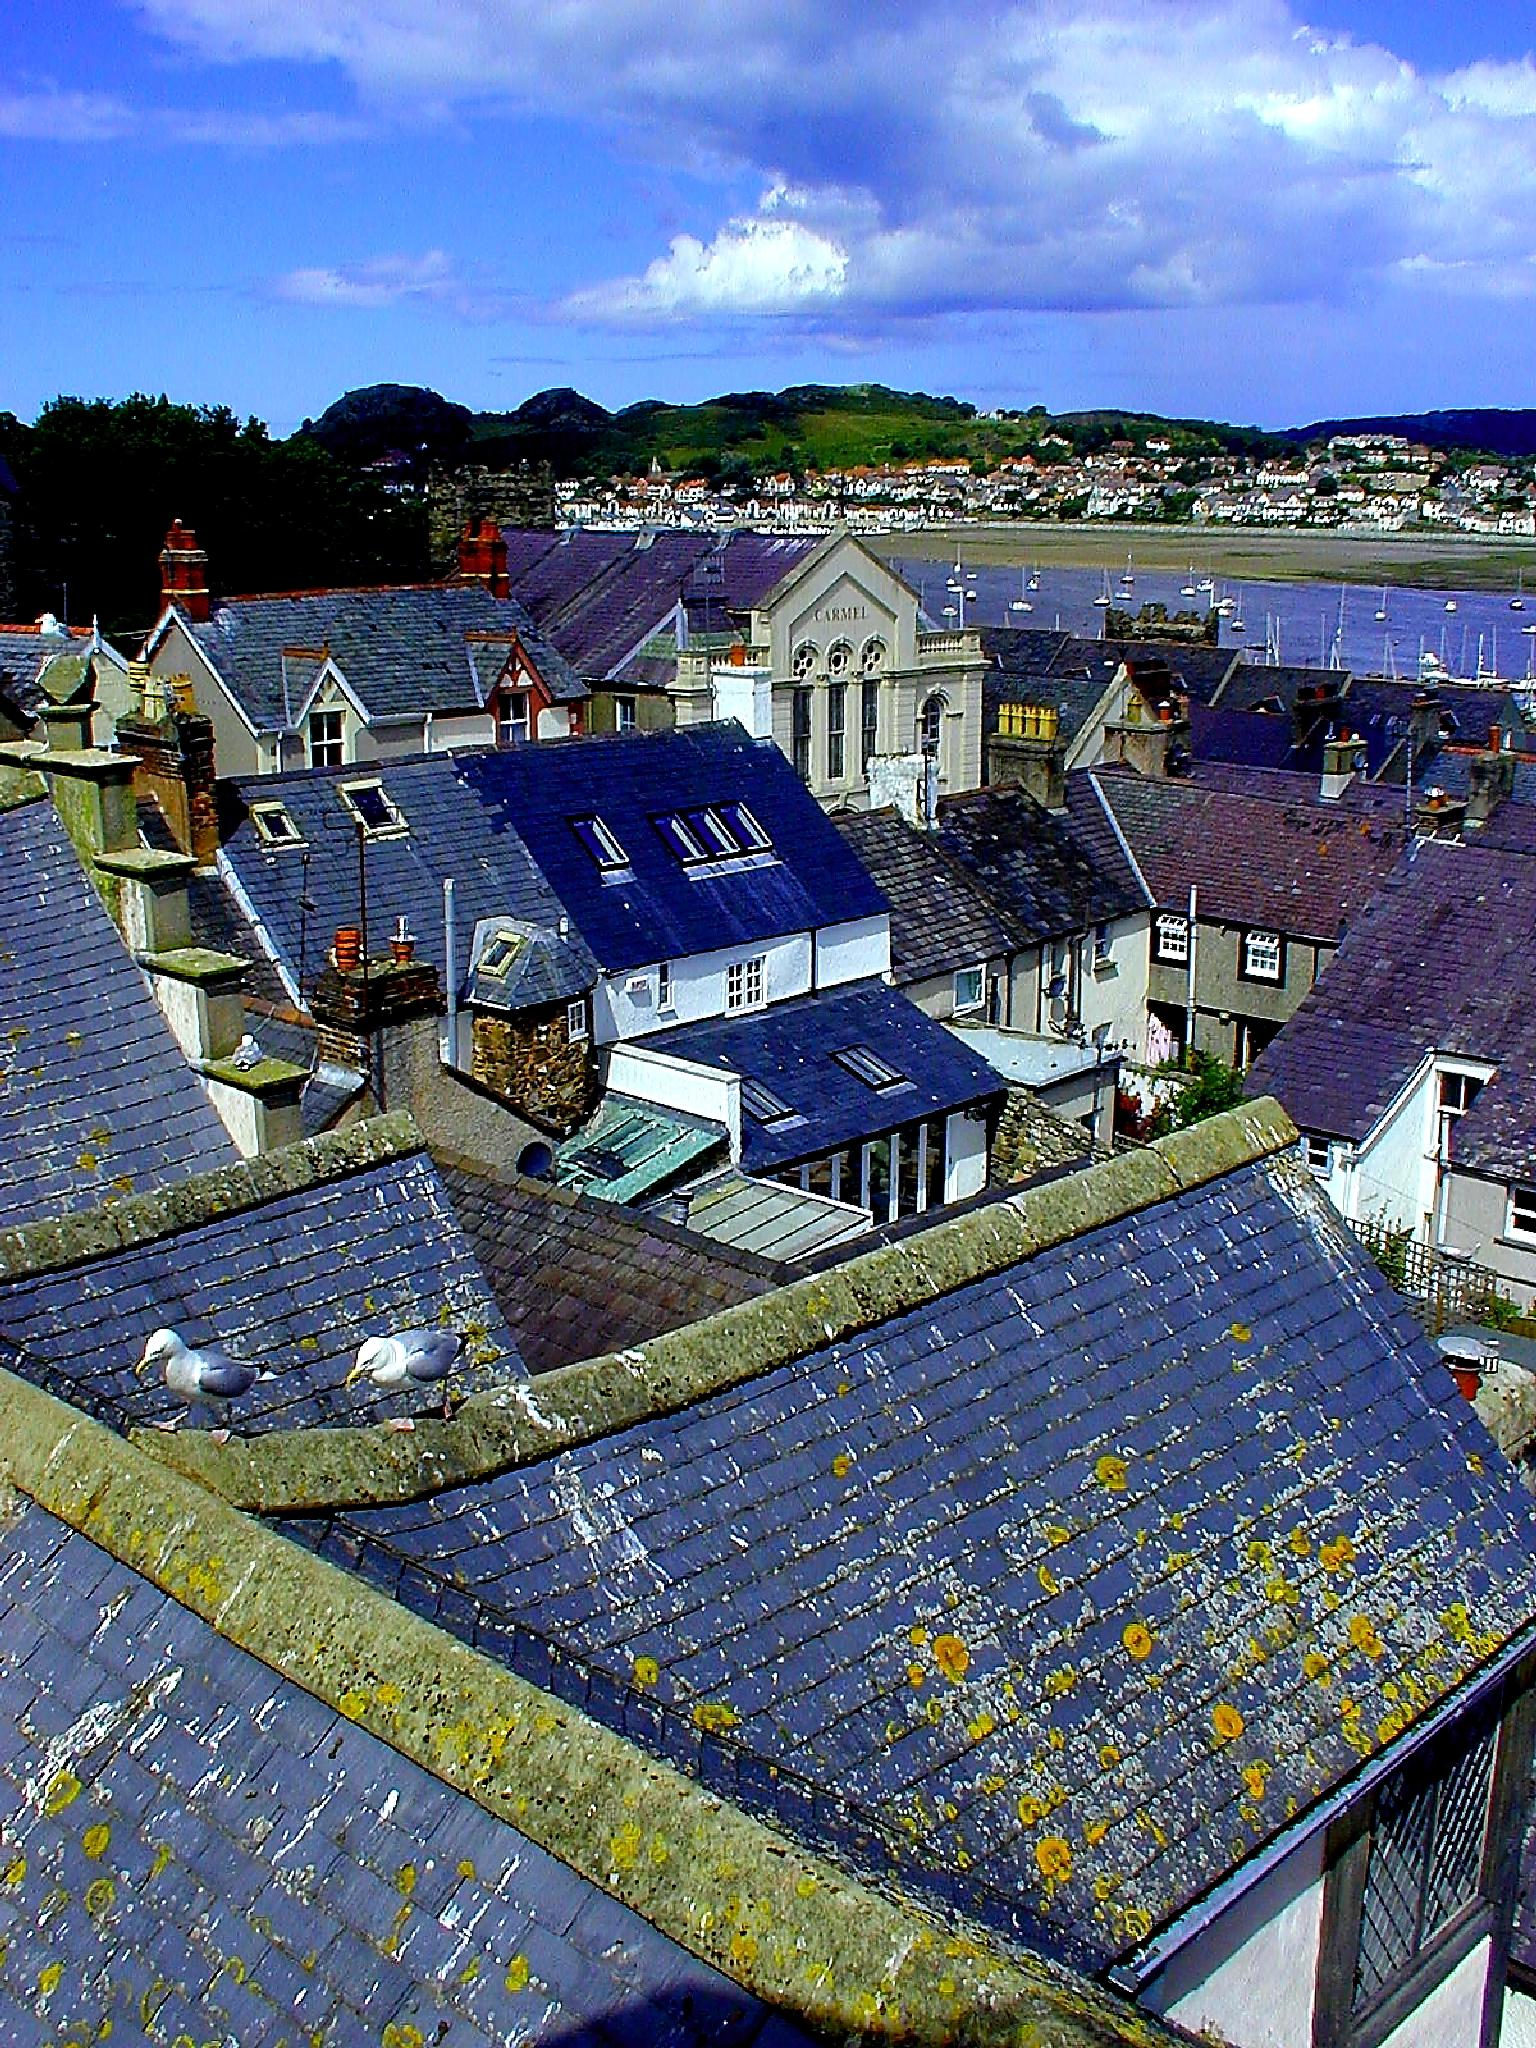 Rooftops in Conwy by Mark Ratcliffe